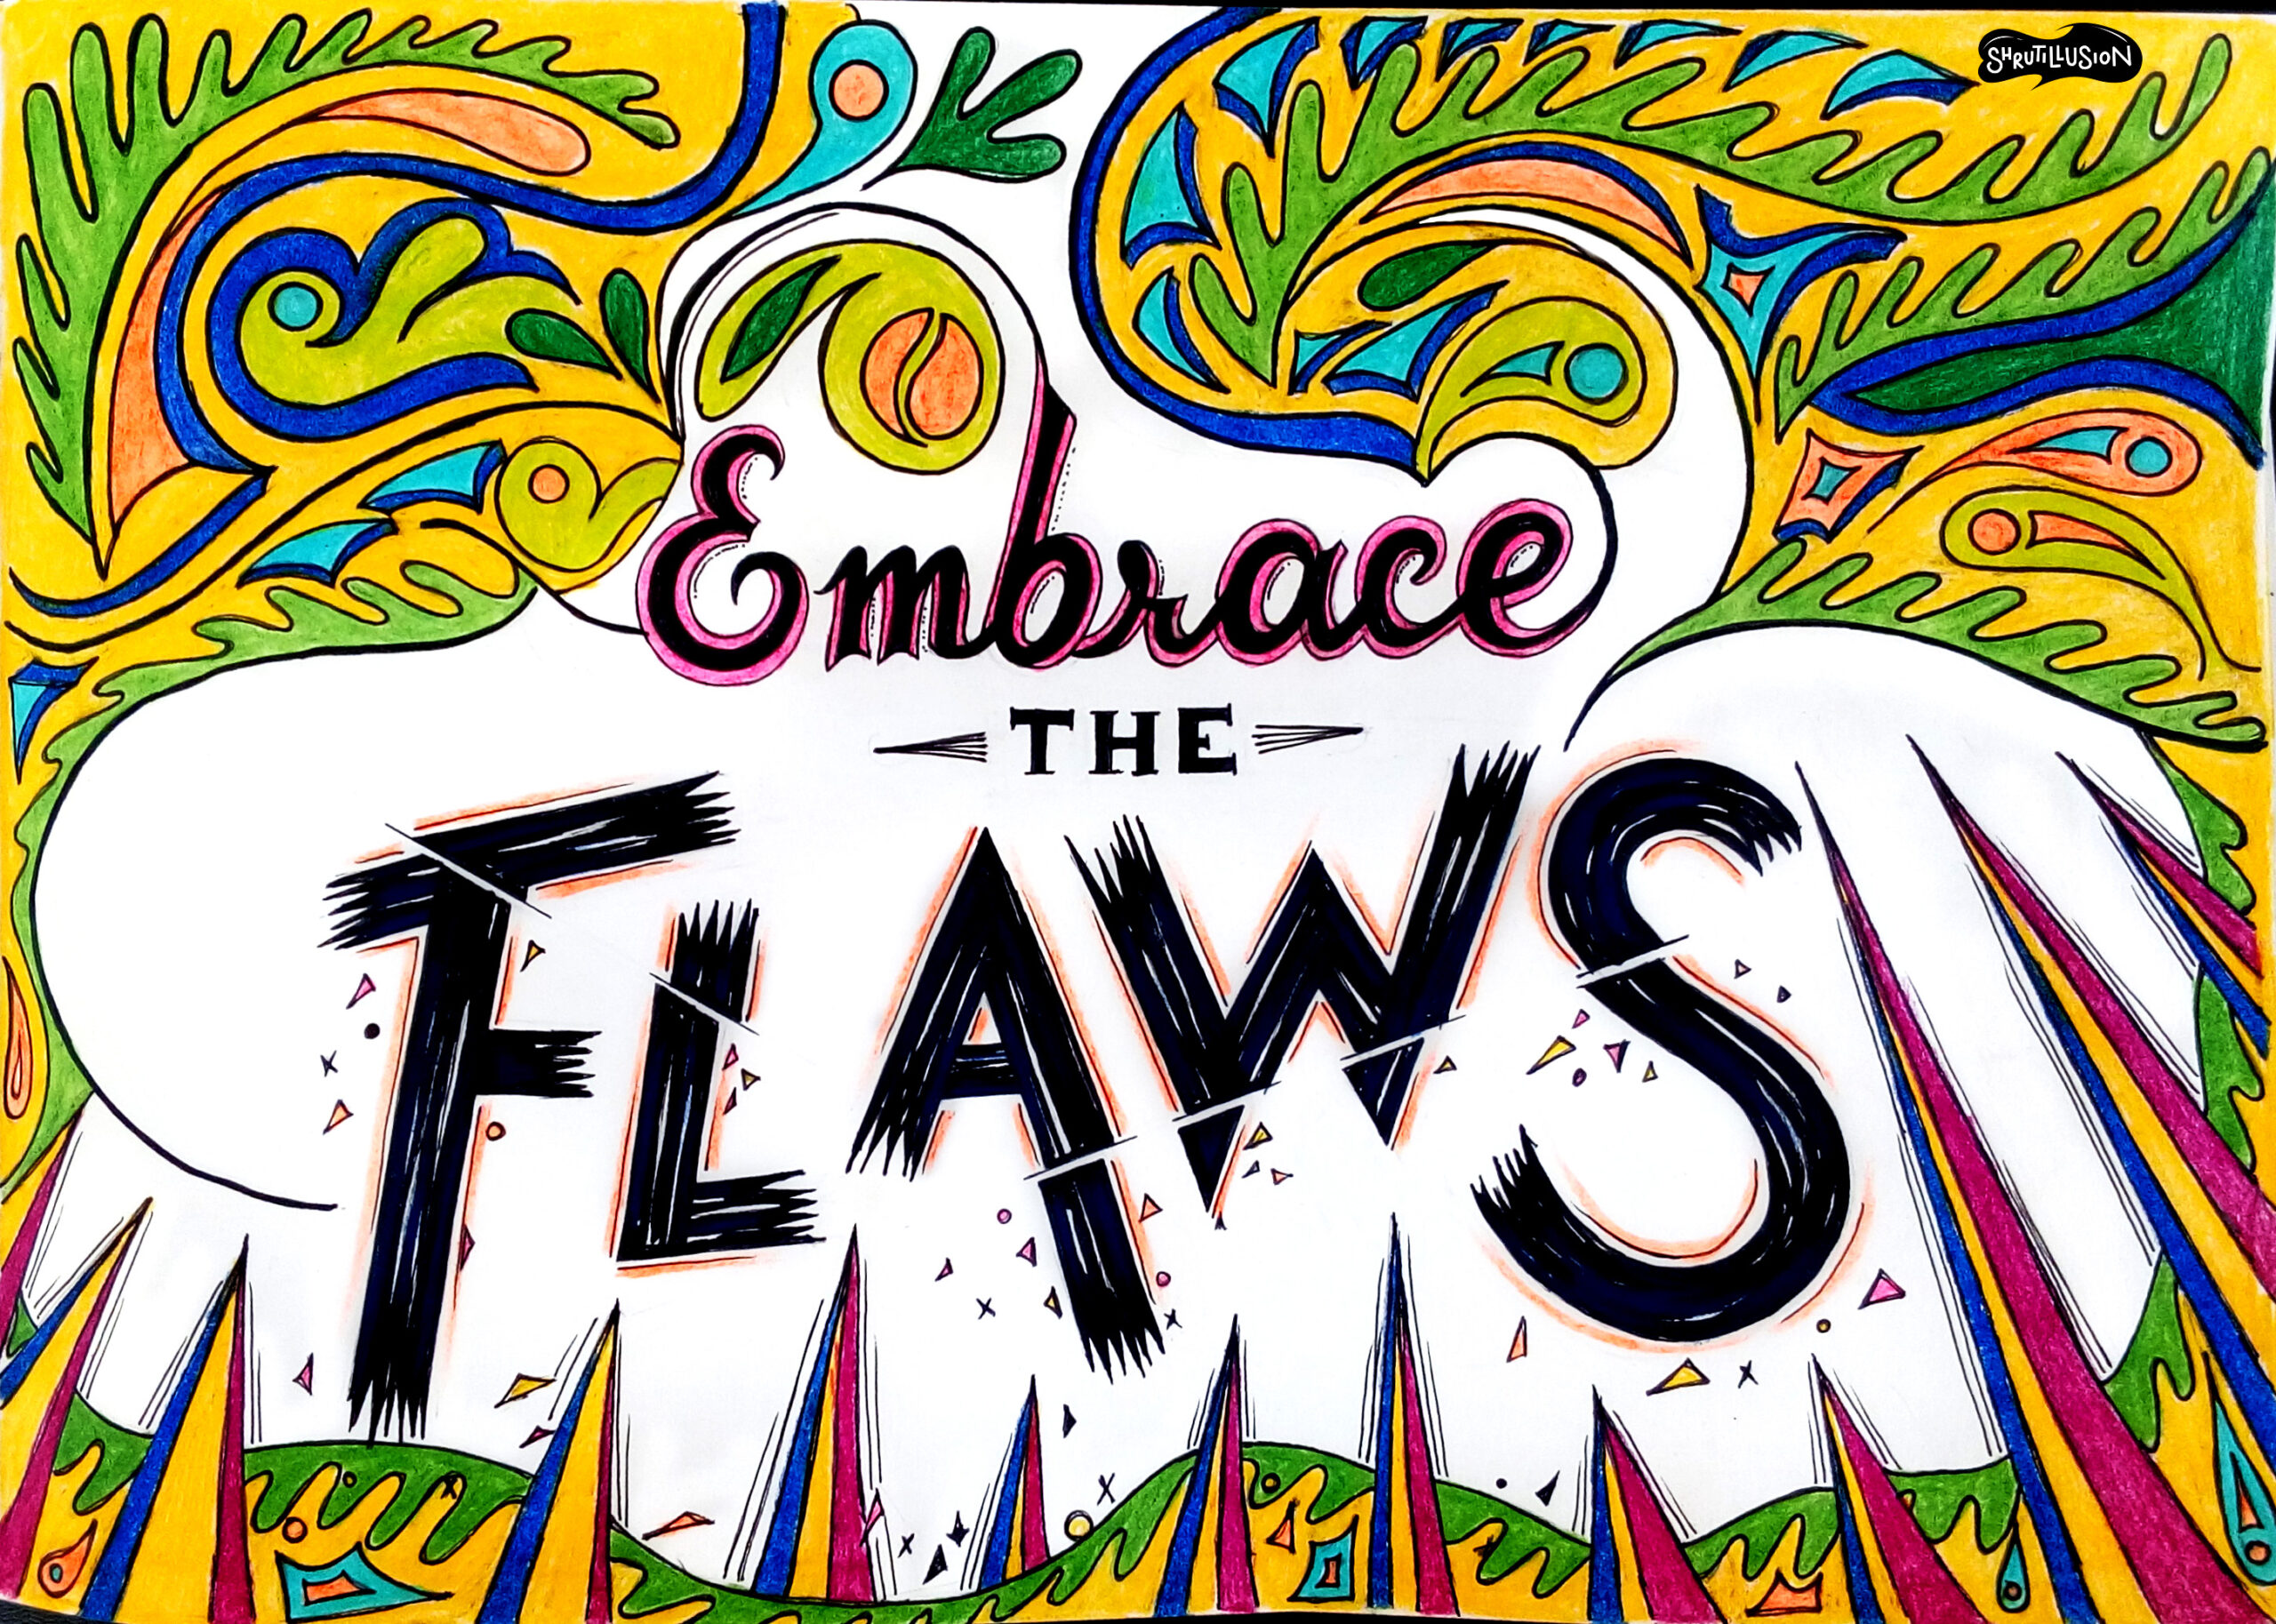 Embrace the flaws